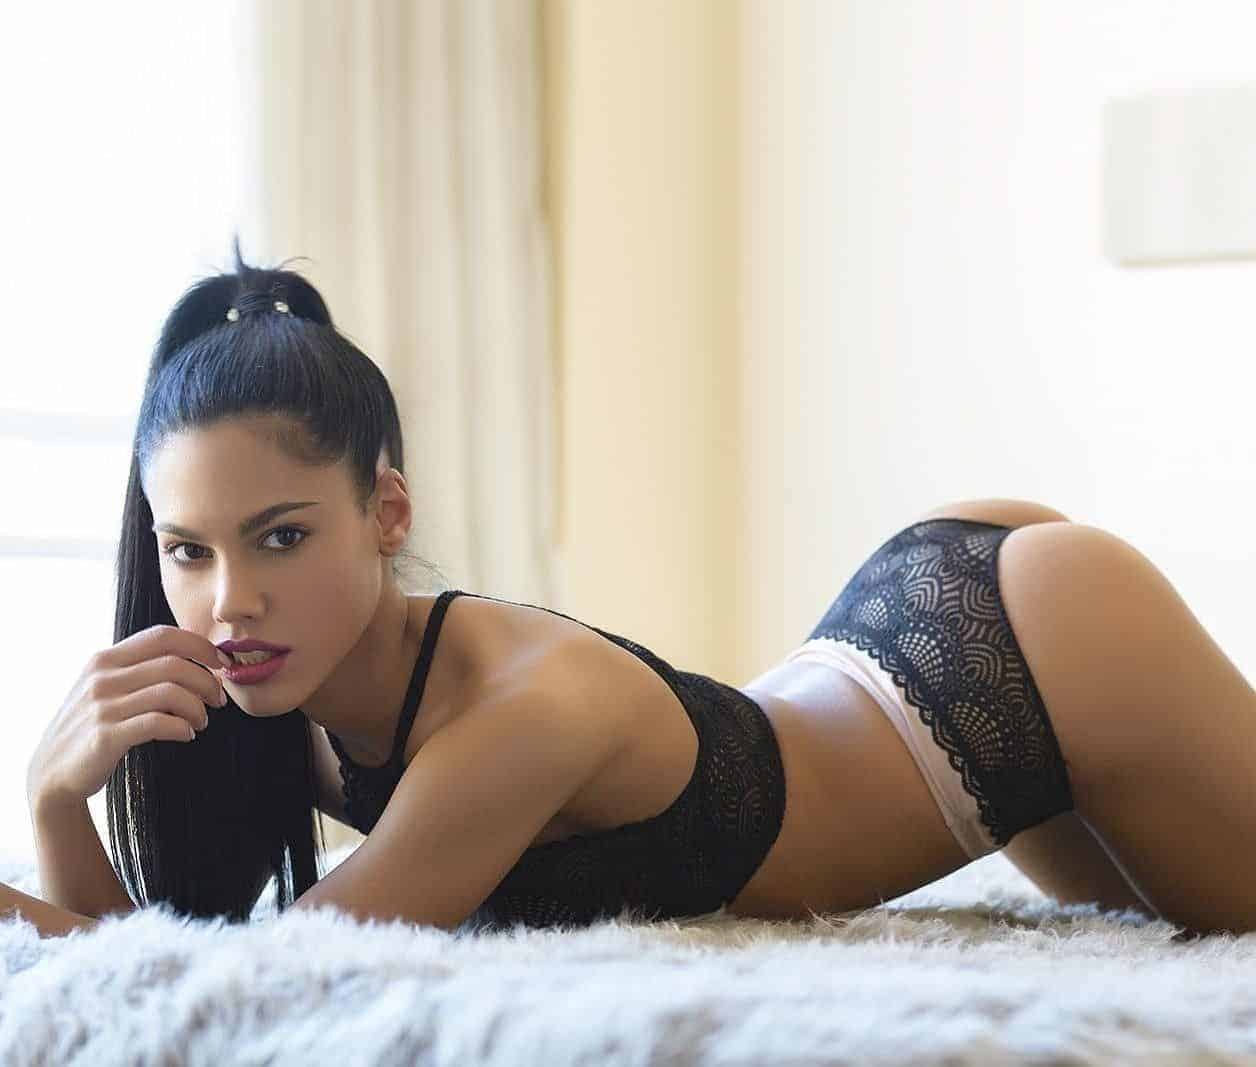 Apolonia Lapiedra hot lingerie